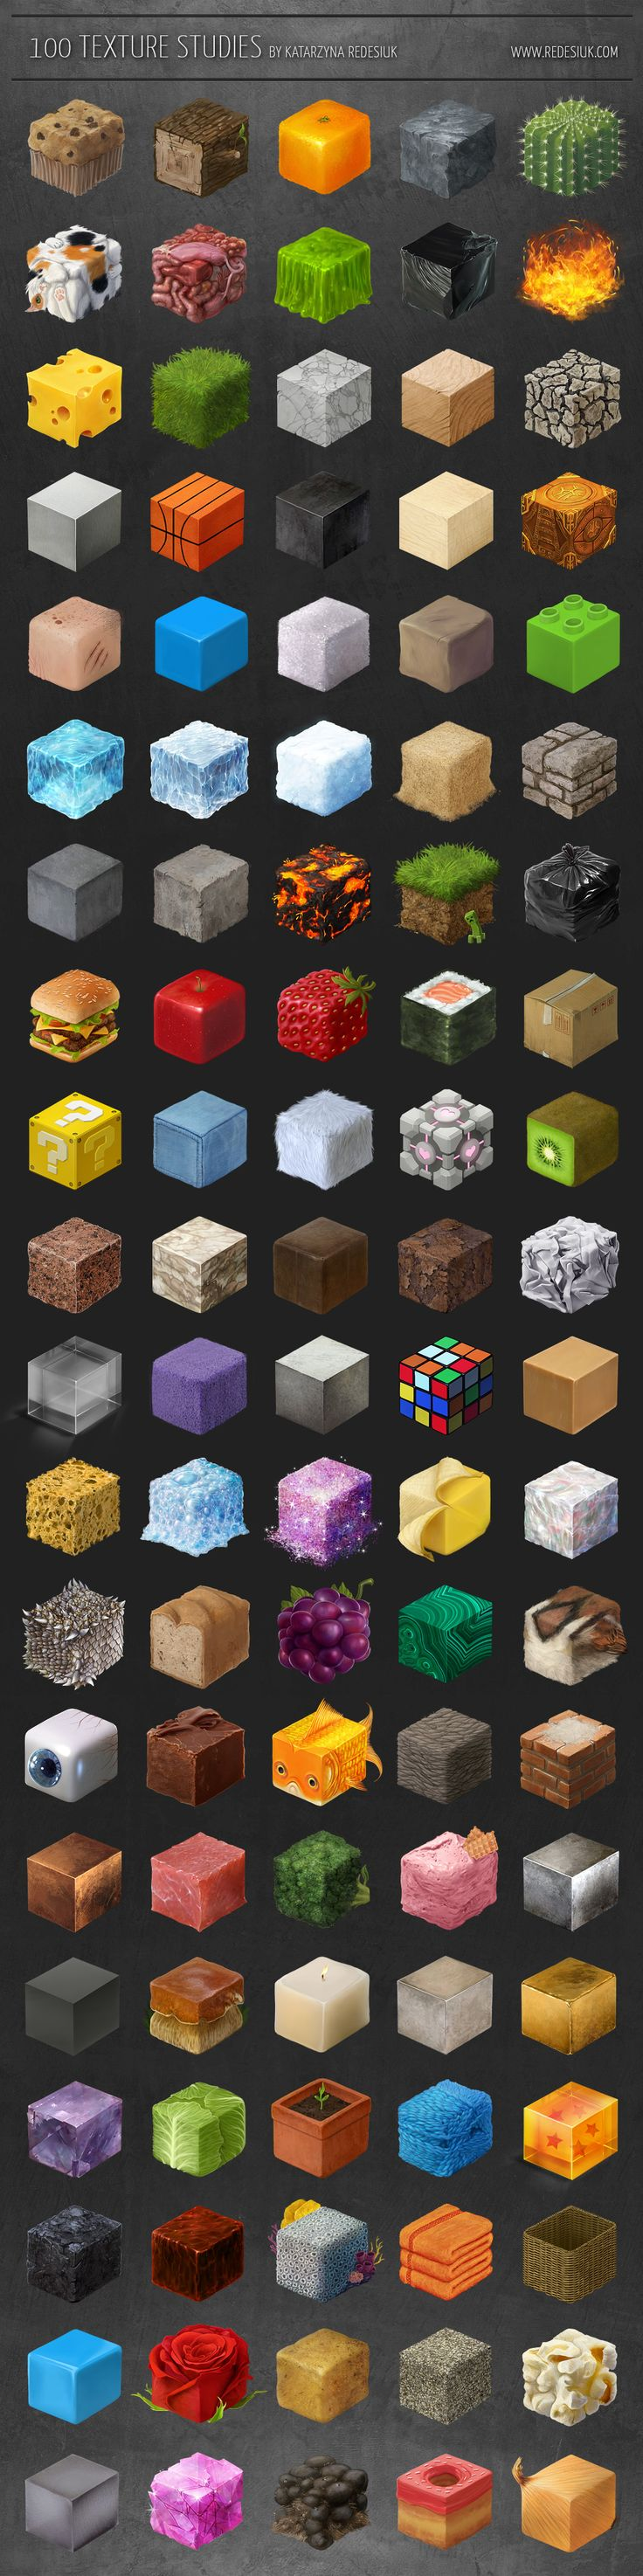 100 texture studies by tanathe.deviantart.com on @deviantART